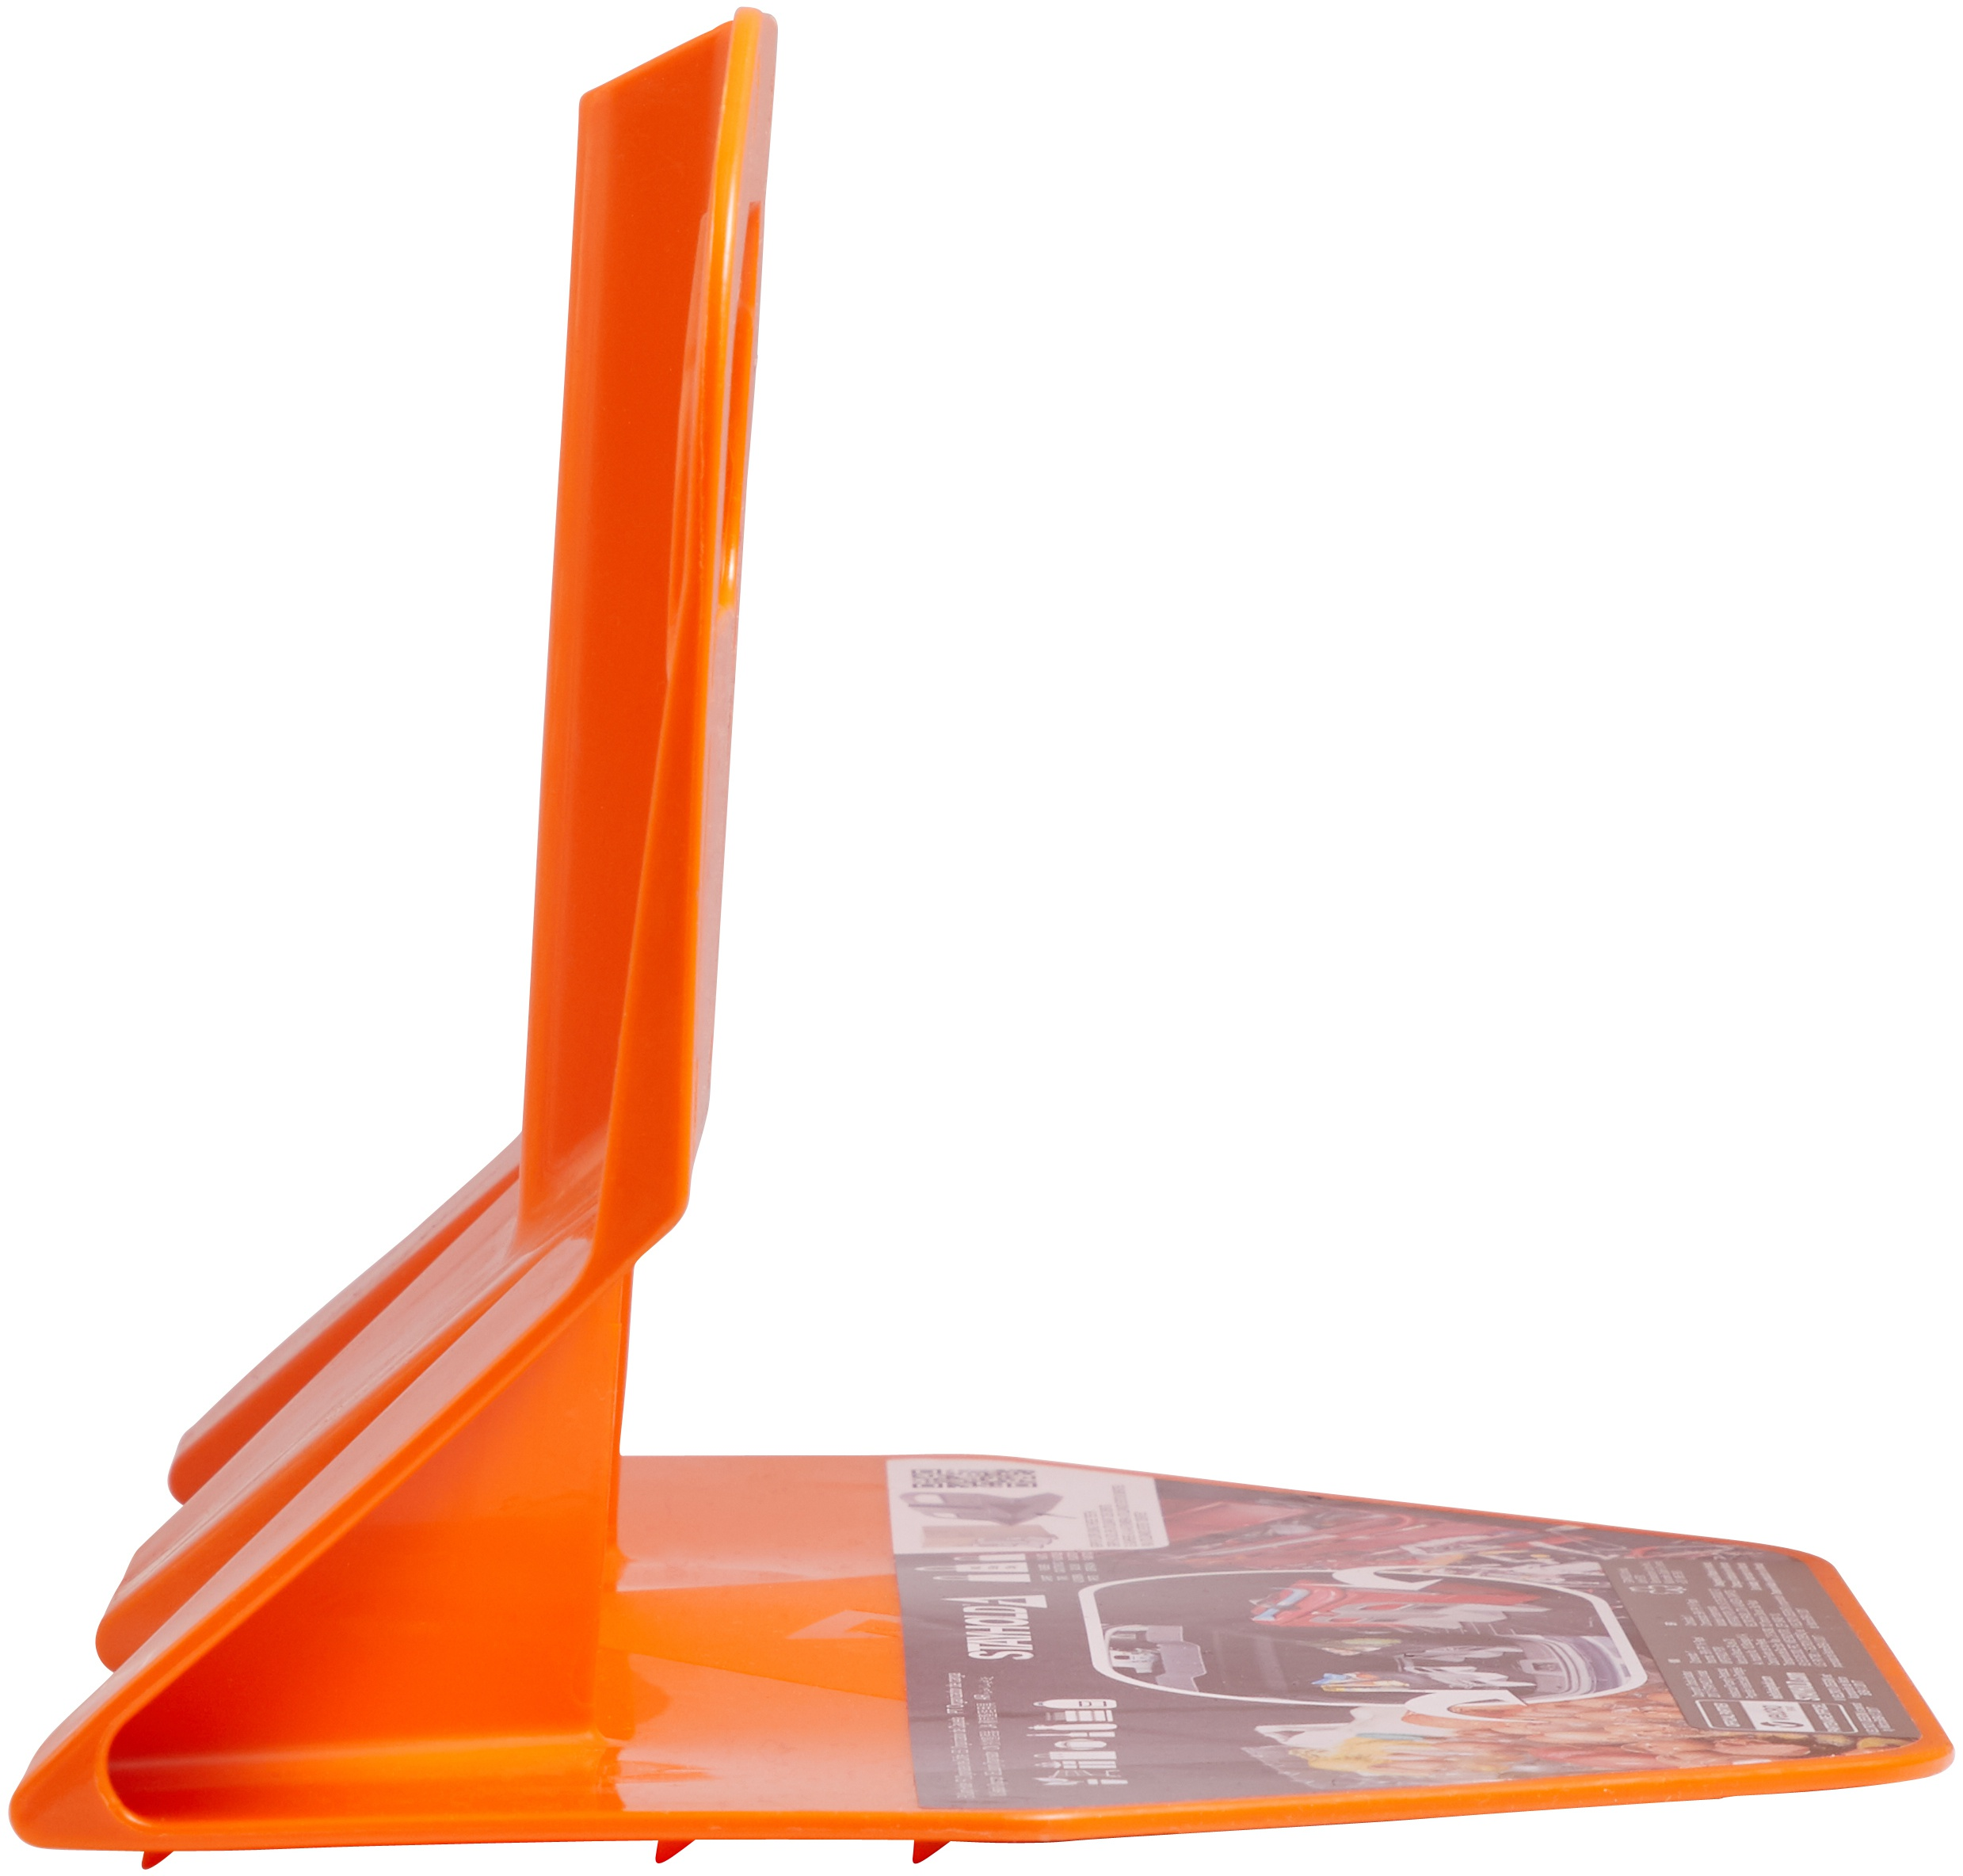 "Stayhold(TM) Sidekick Modular Cargo Organizer 13.75""Wx7.5""H-Orange"